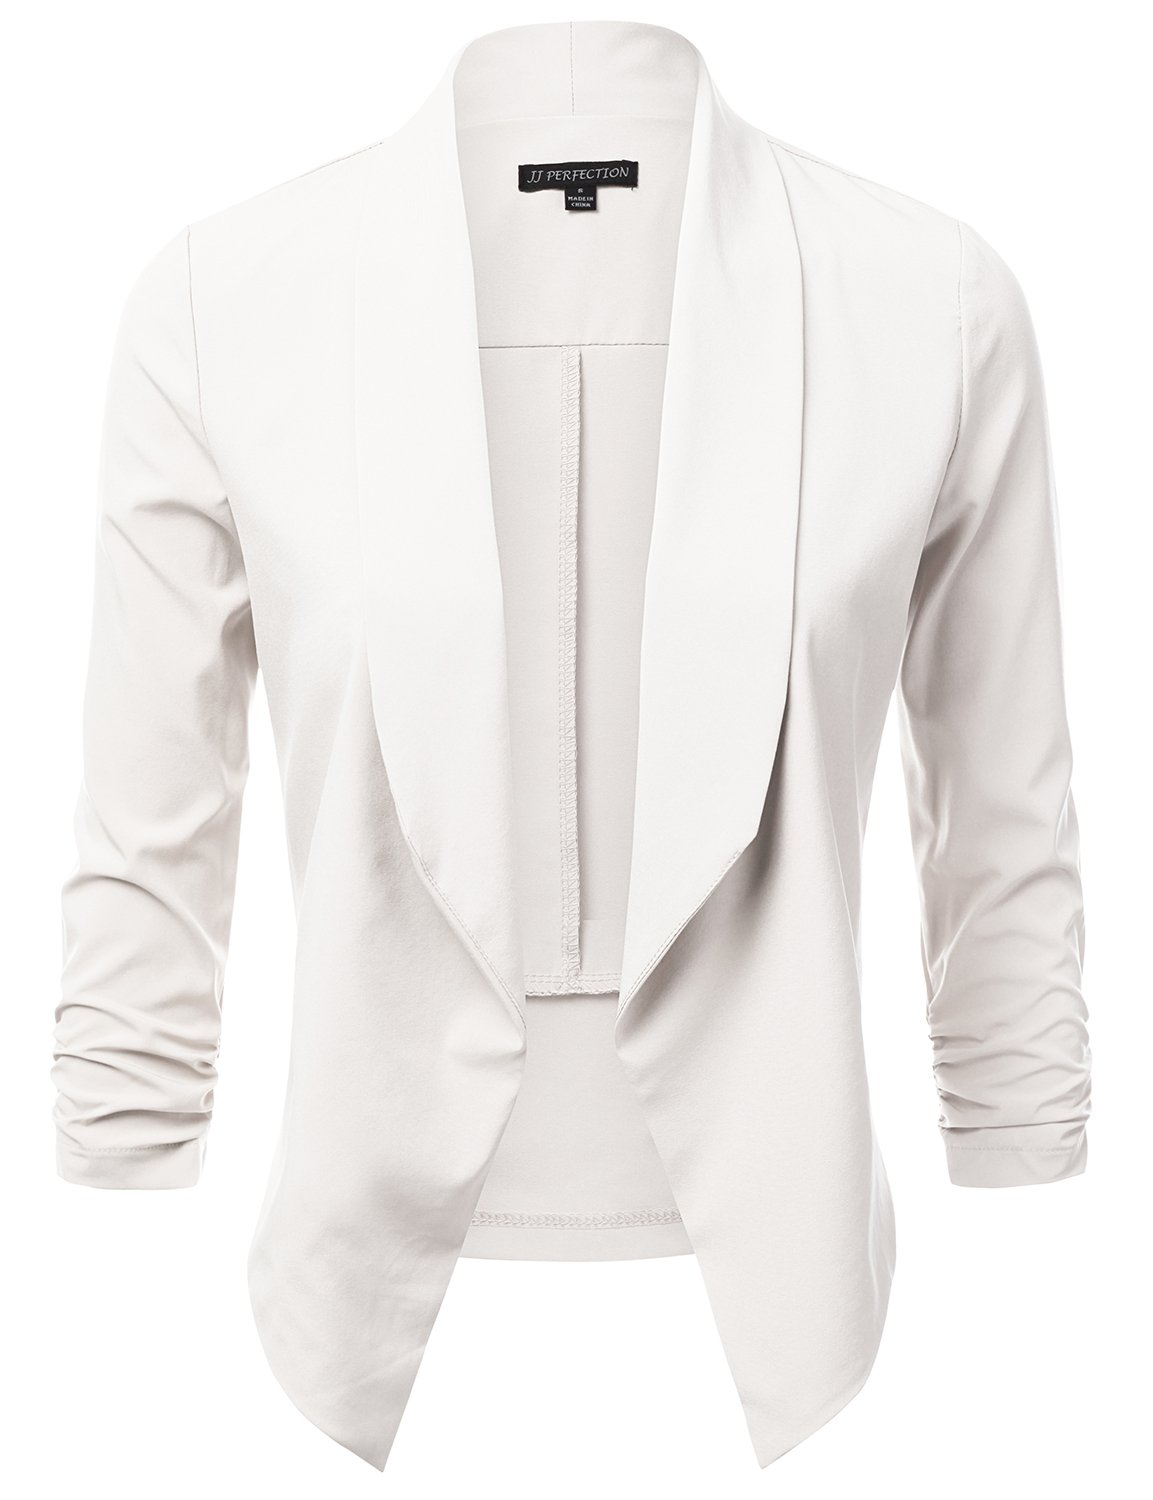 JJ Perfection Women's Lightweight Chiffon Ruched Sleeve Open-Front Blazer OFFWHITE L